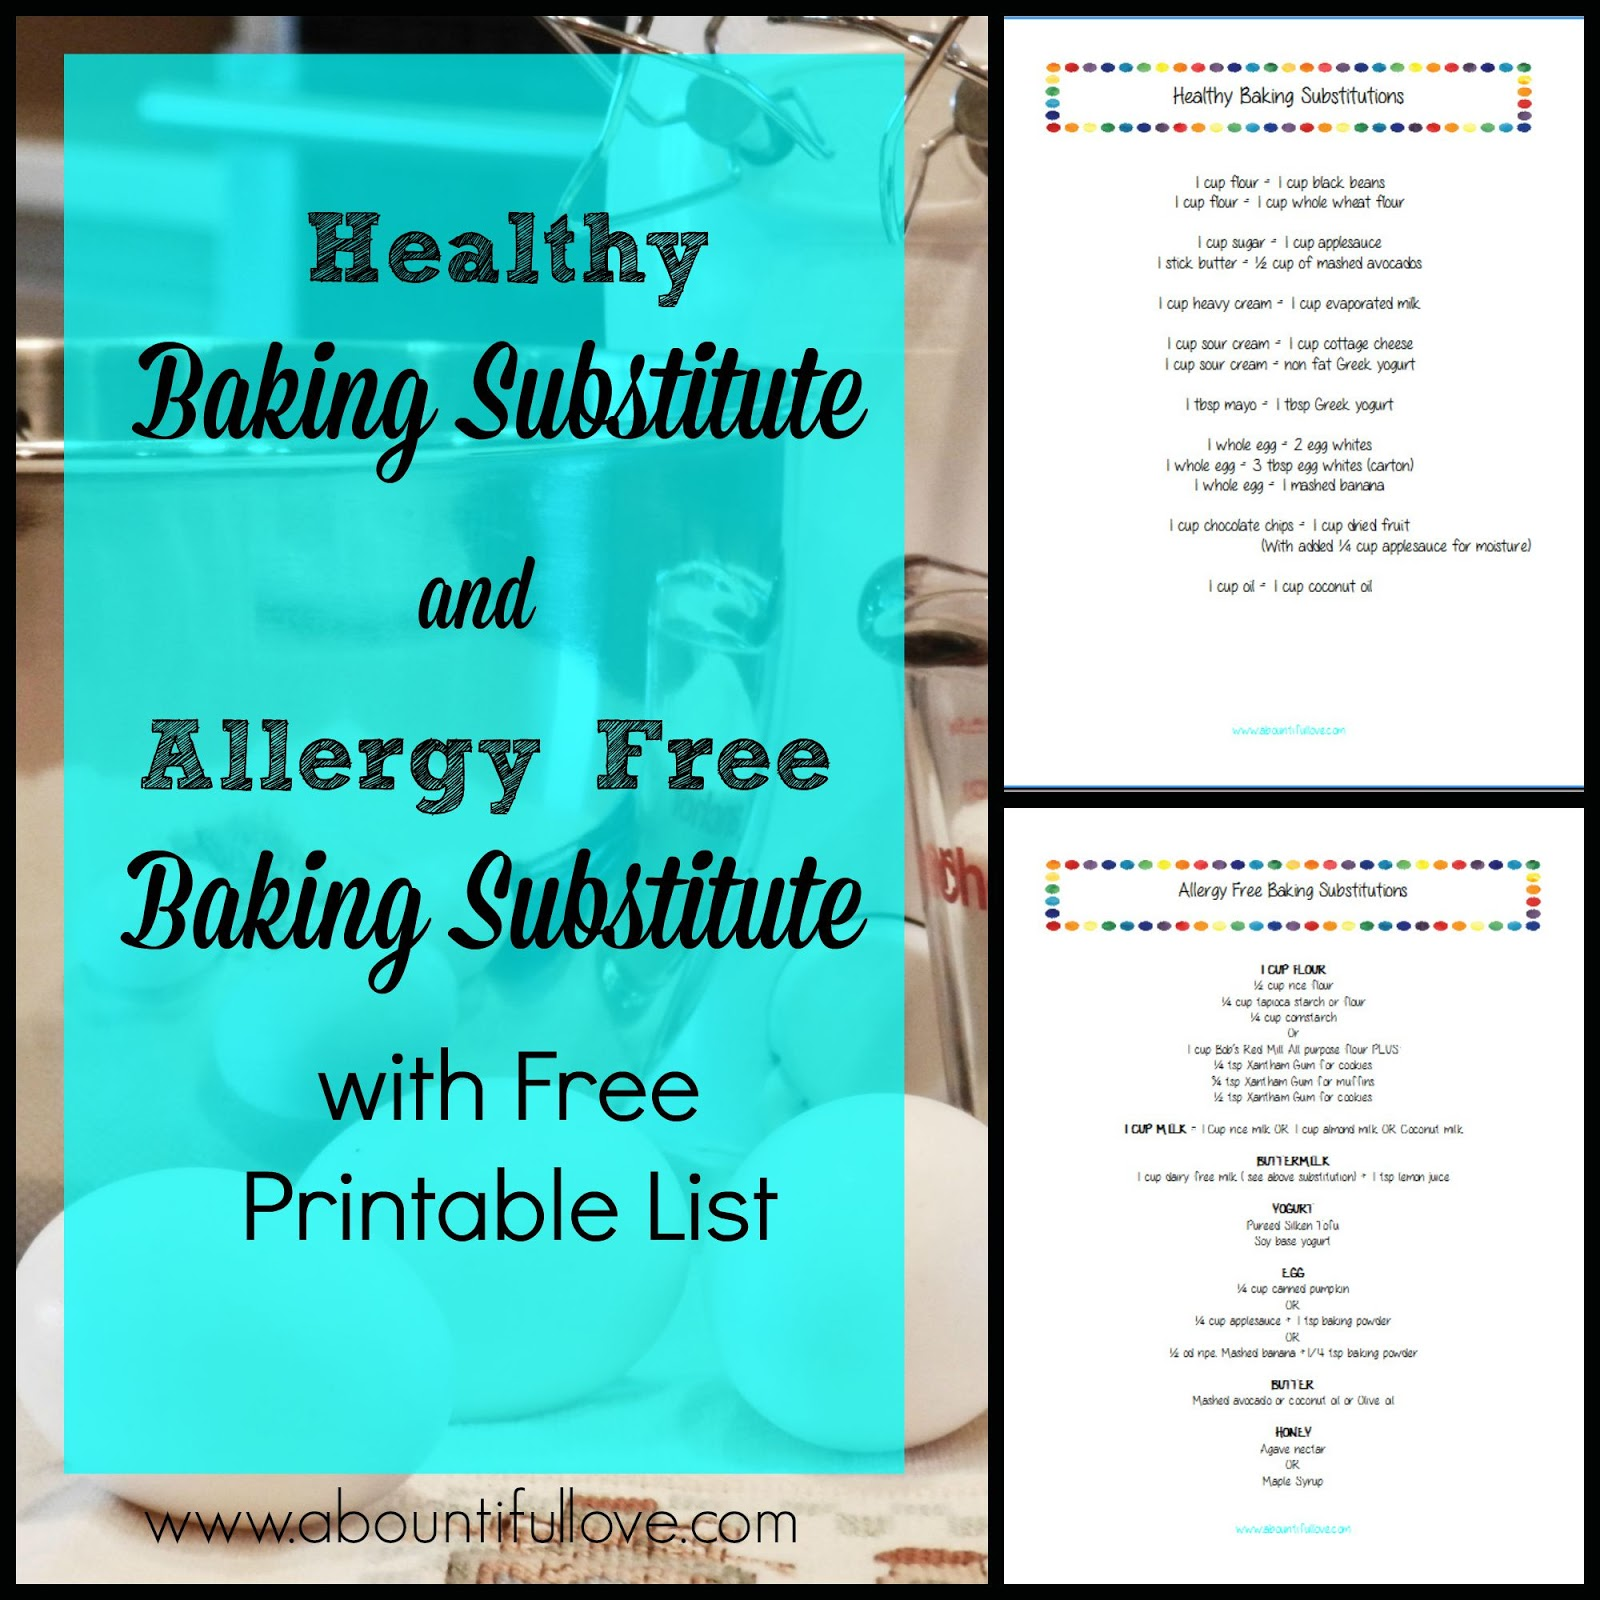 A Bountiful Love: Healthy and Allergy Free Baking Substitution